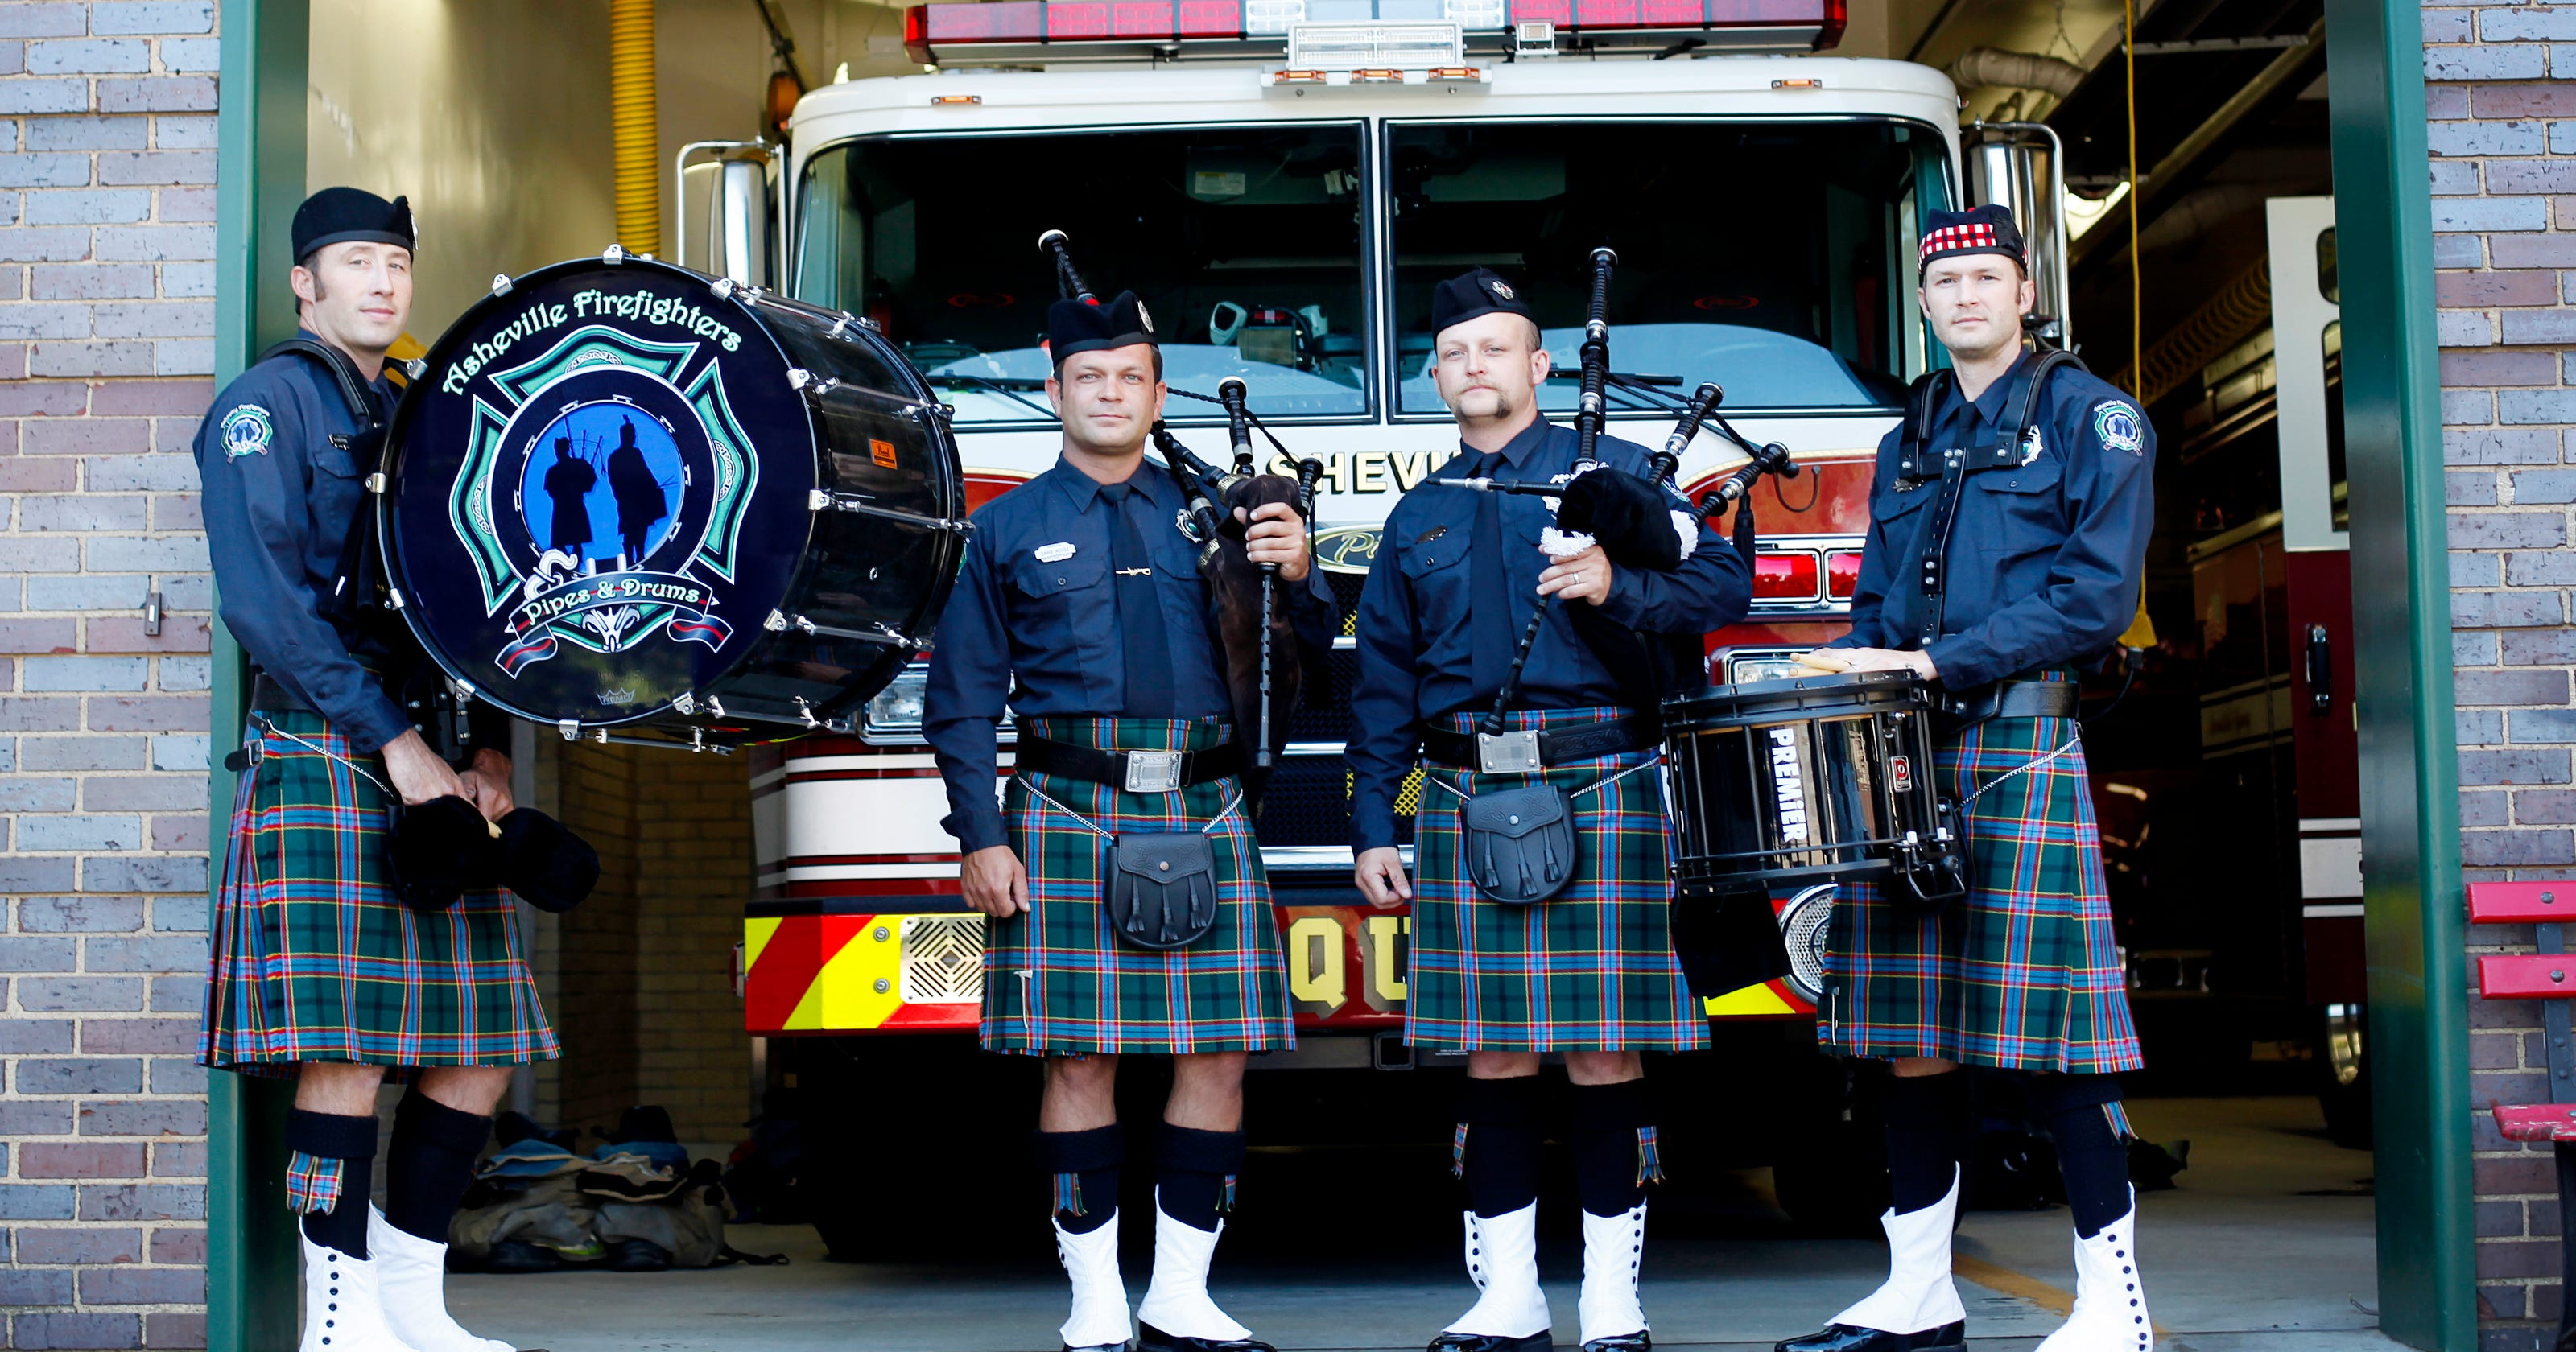 Firefighters Pipes and Drums salute the fallen of 9/11